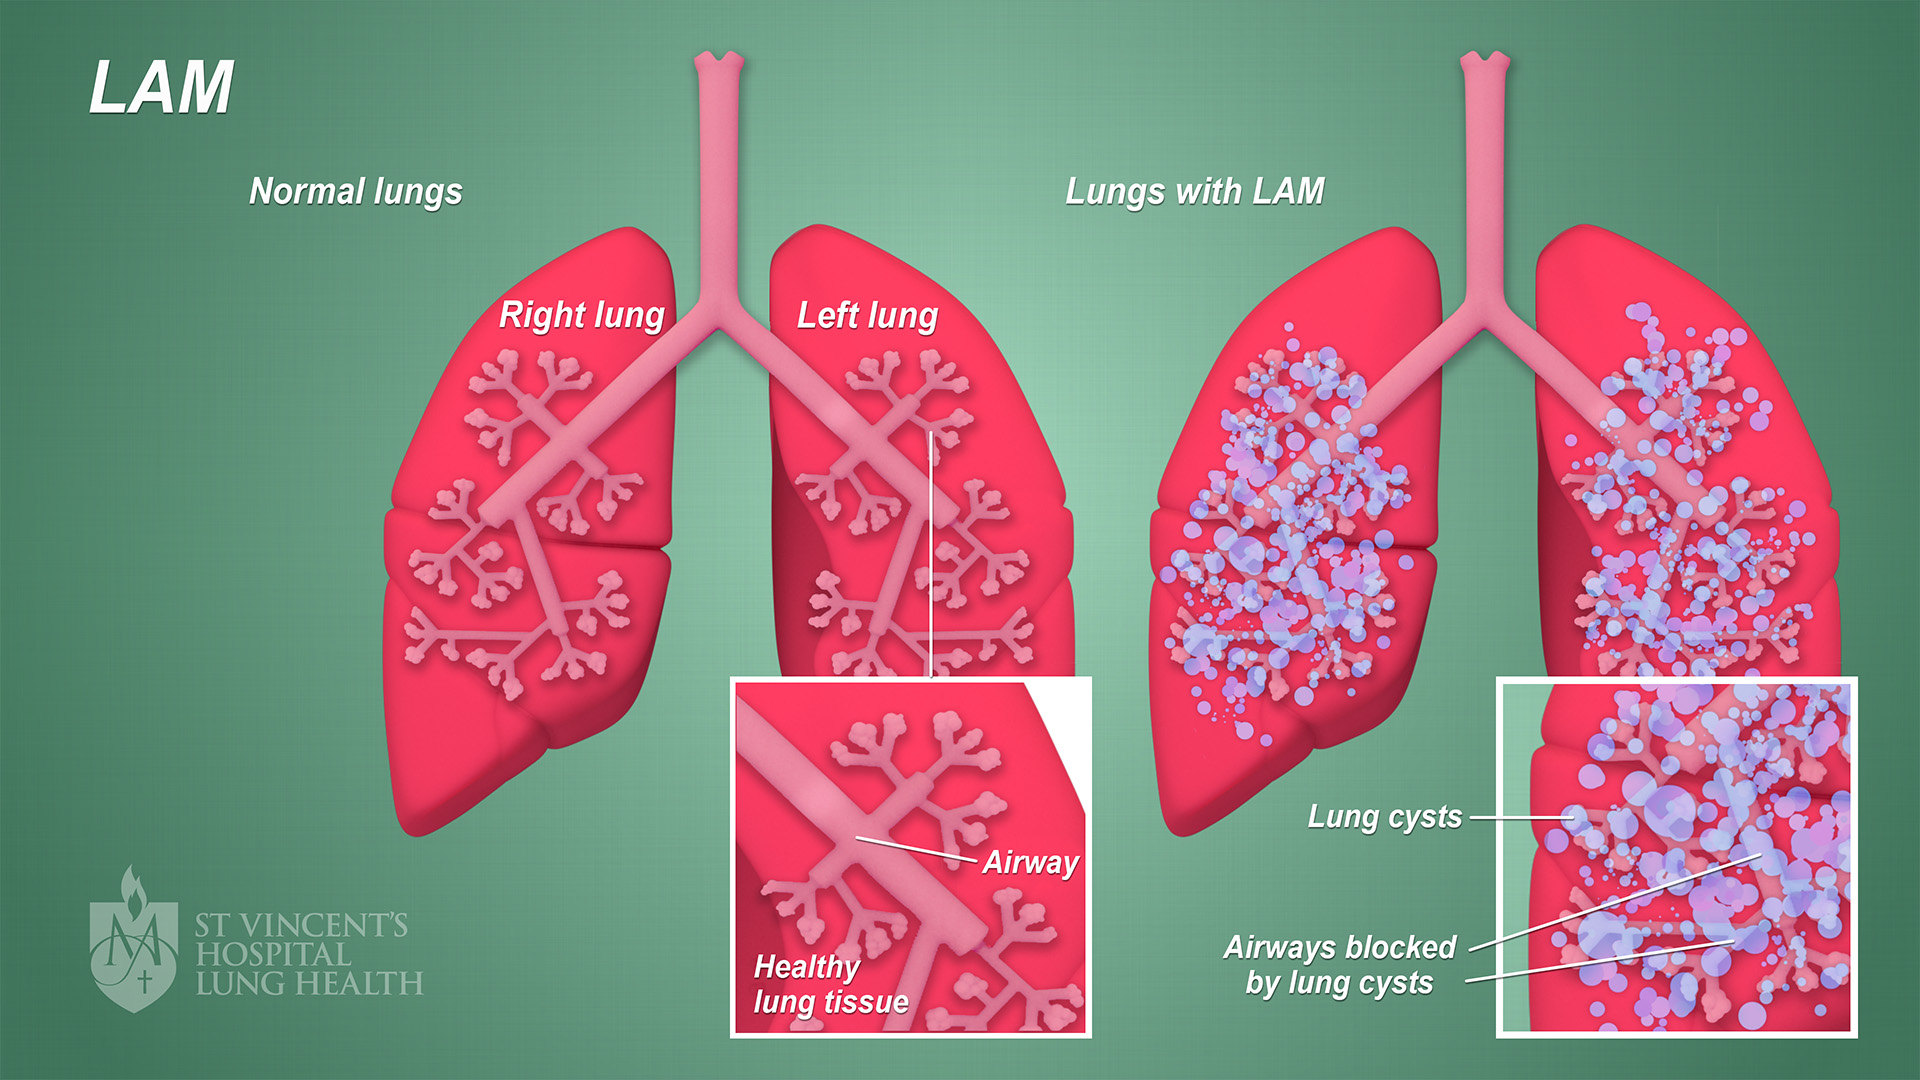 7_SVH_Lung_Health_LAM_final_1080p